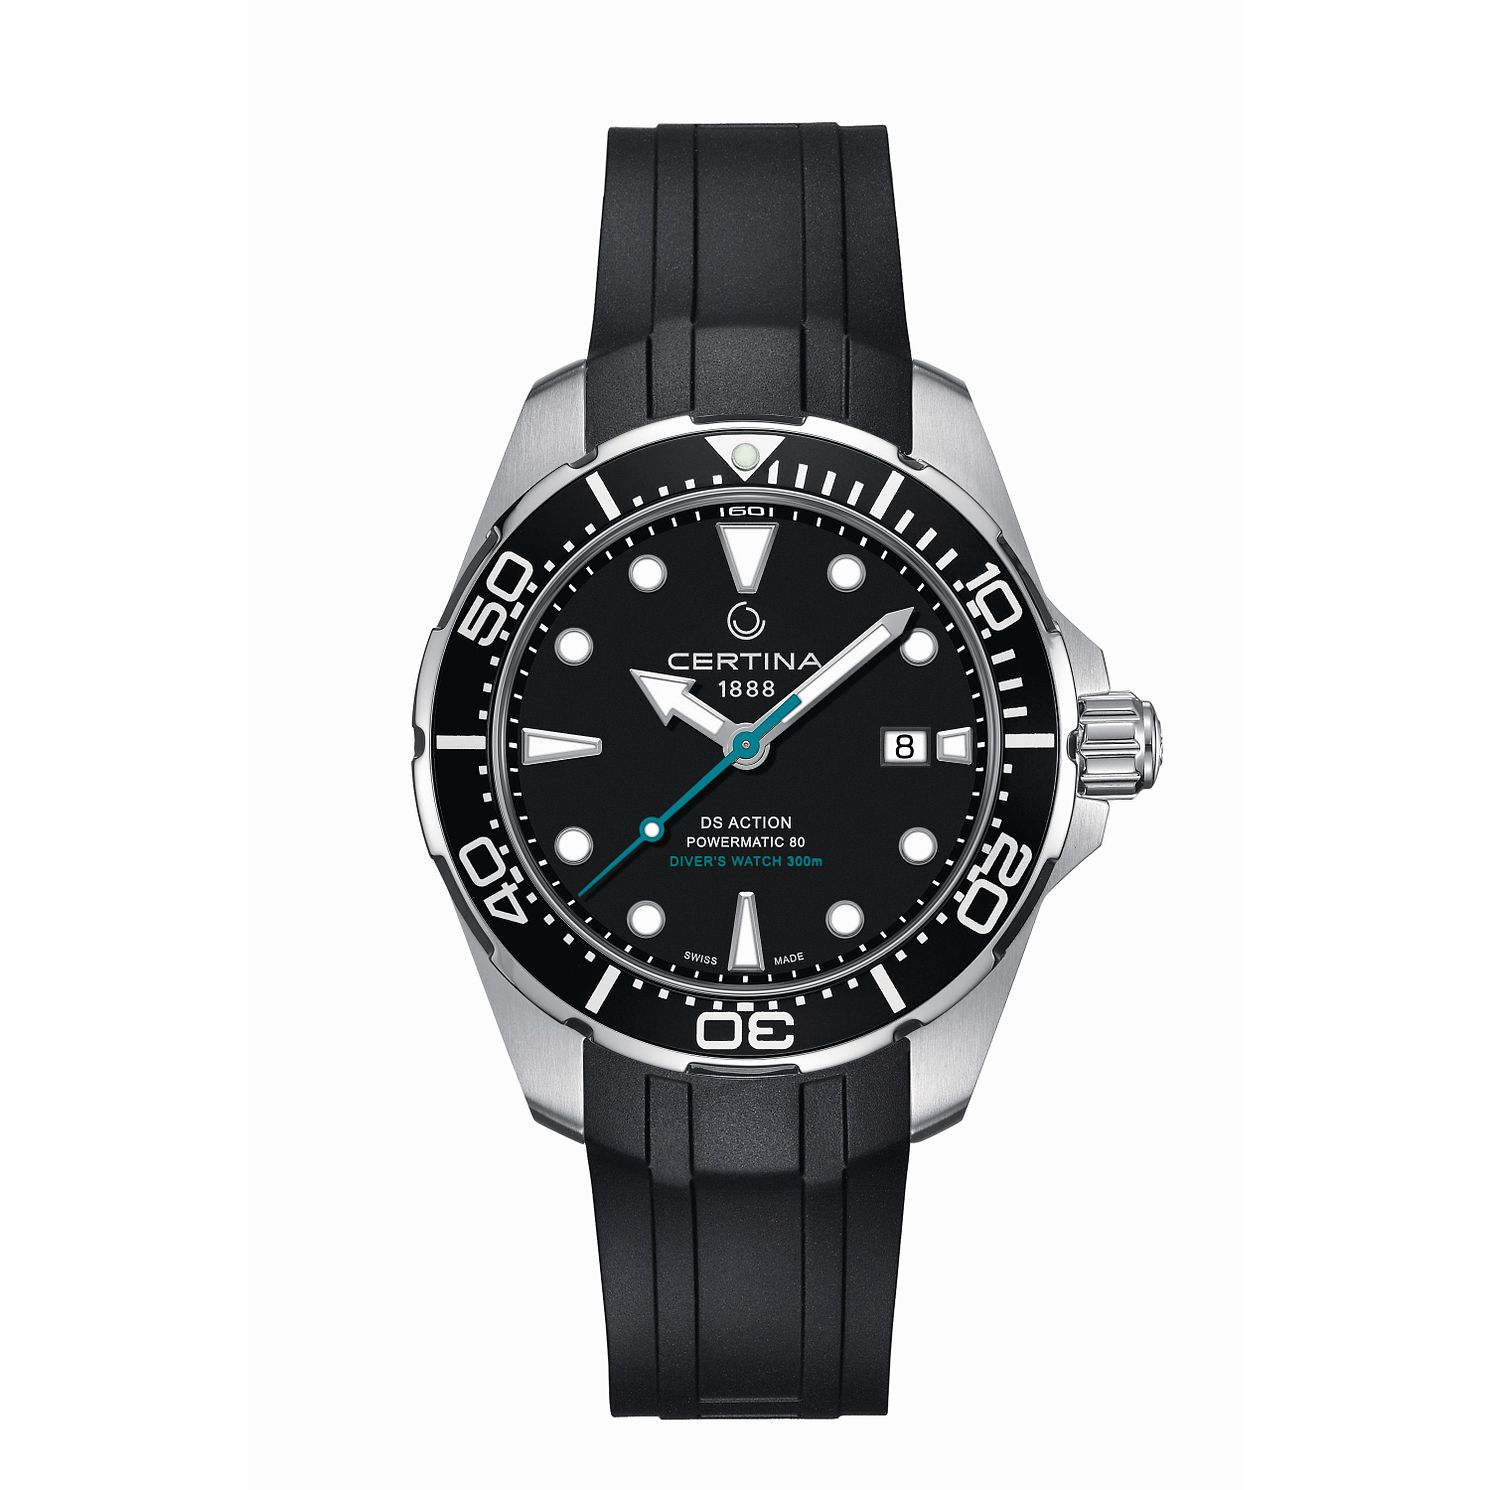 Certina Ds Action Diver Powermatic Black Rubber Strap Watch - Product number 5128358